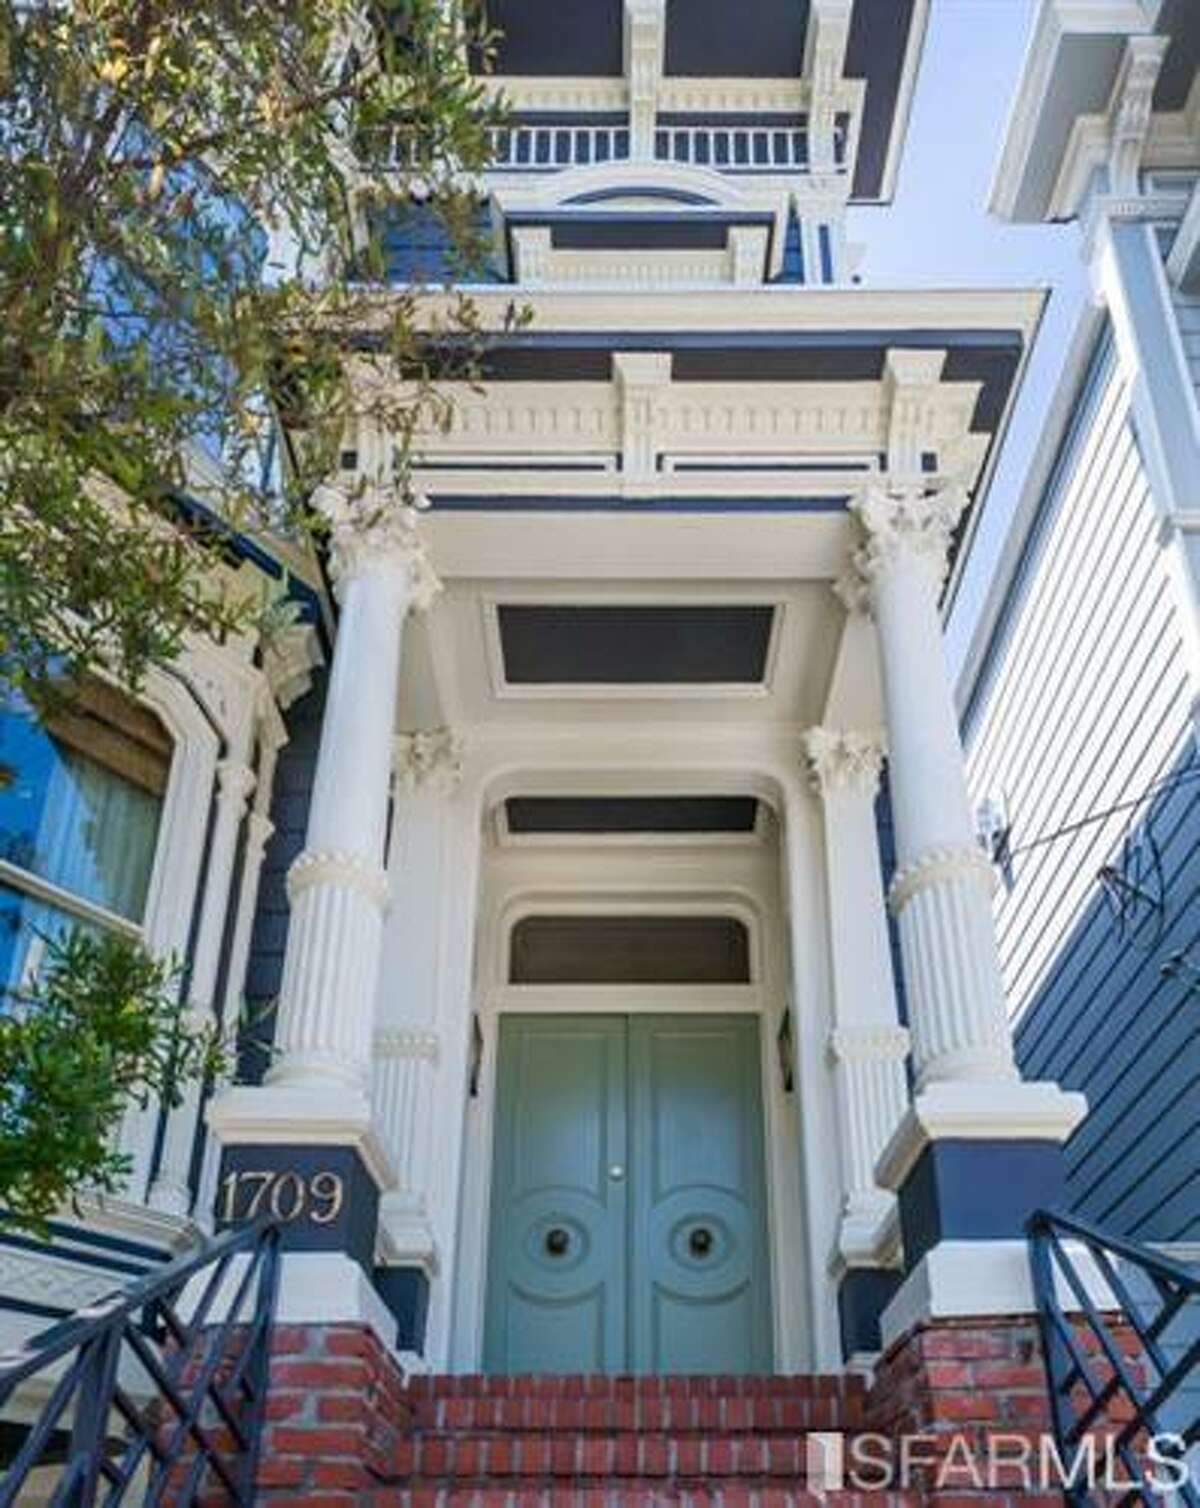 An 1883 San Francisco Victorian is on the market to rent for $13,950 per month.